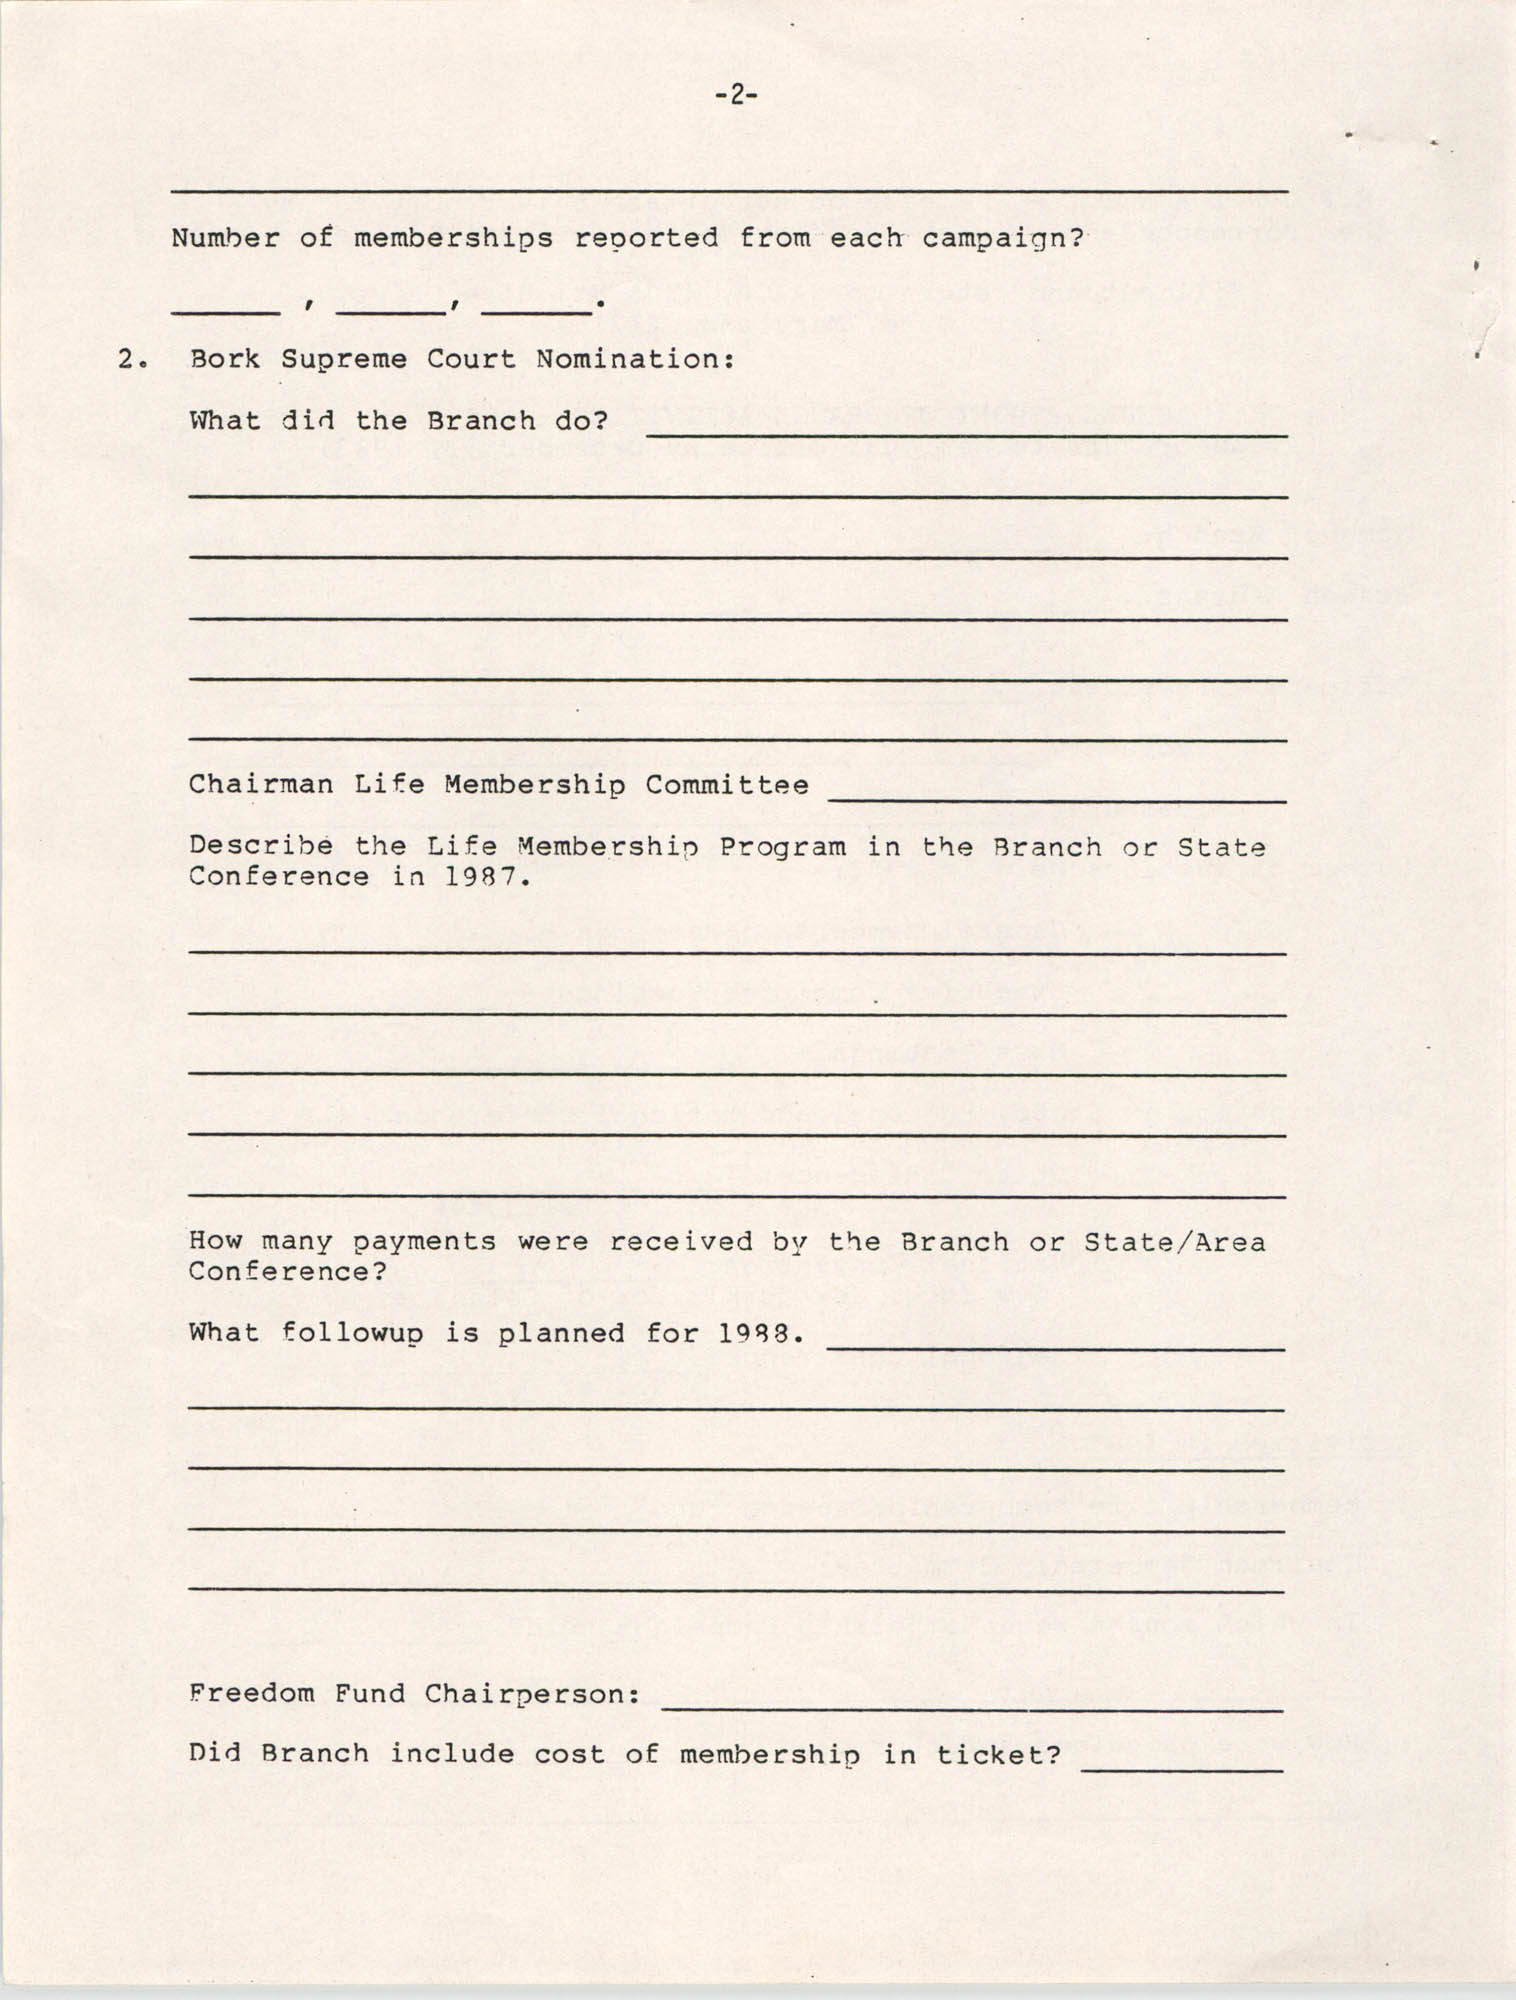 Annual Report of Branch Activities, 1987, Page 2